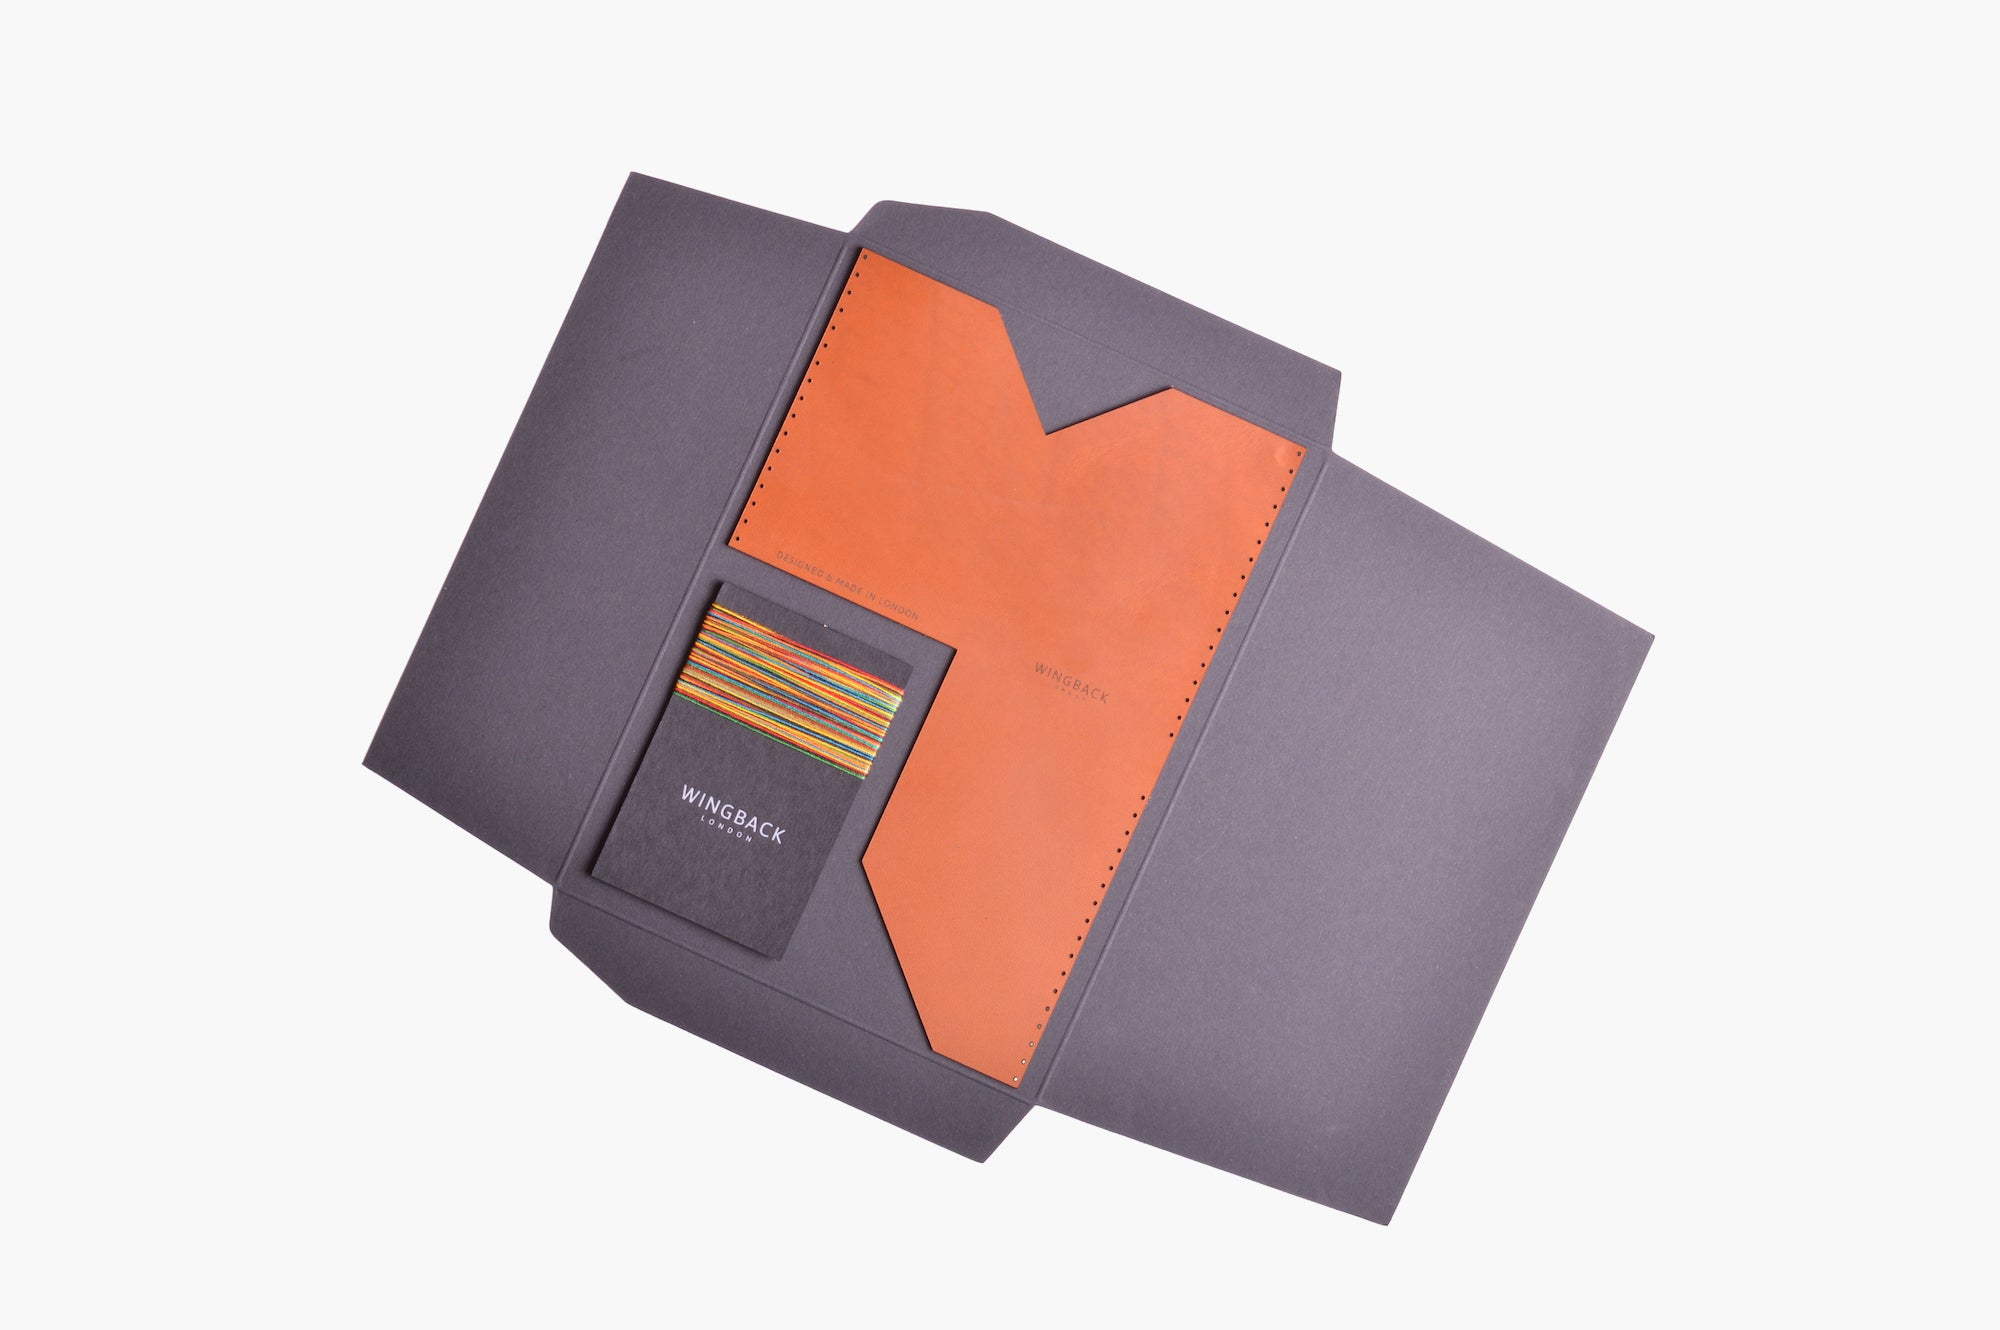 Card Holder kit - Whisky